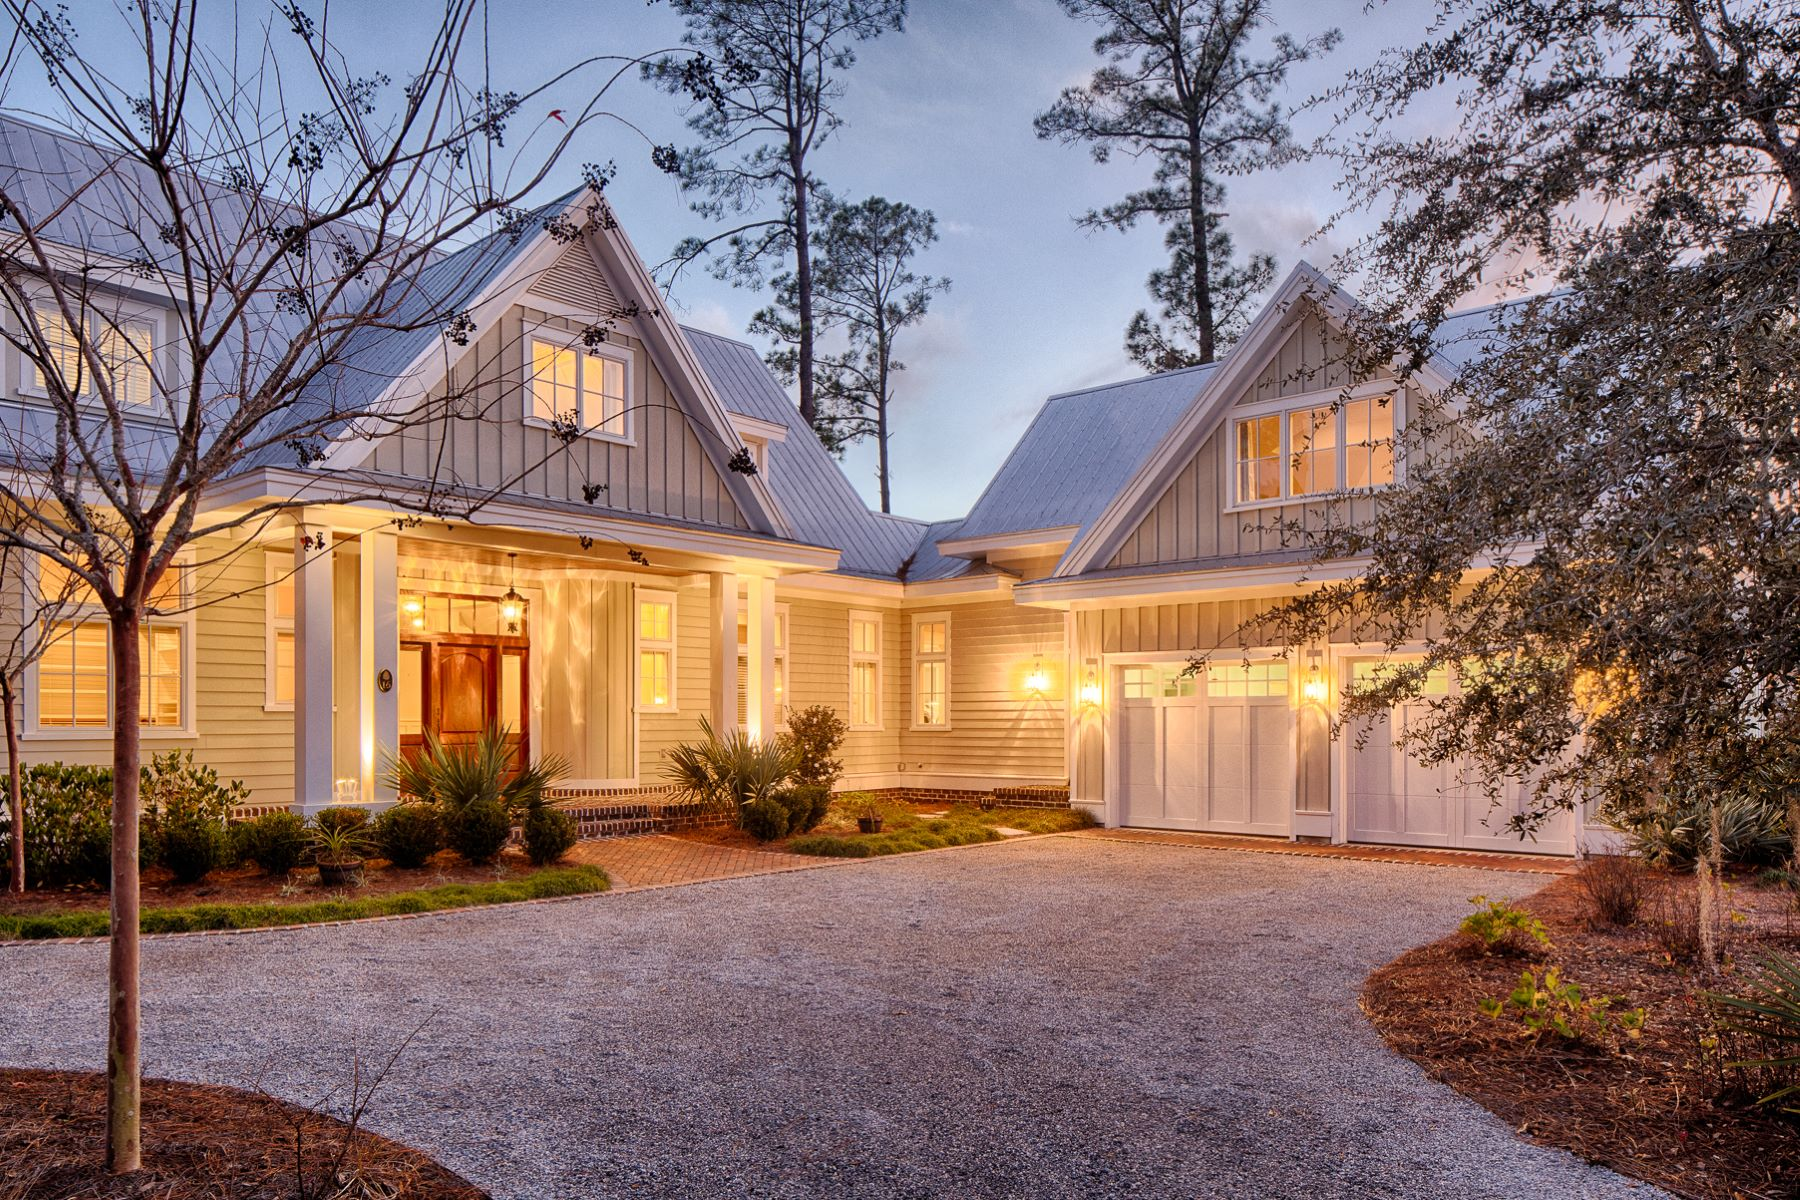 Single Family Homes for Sale at 16 Wolf Tree Road Bluffton, South Carolina 29910 United States